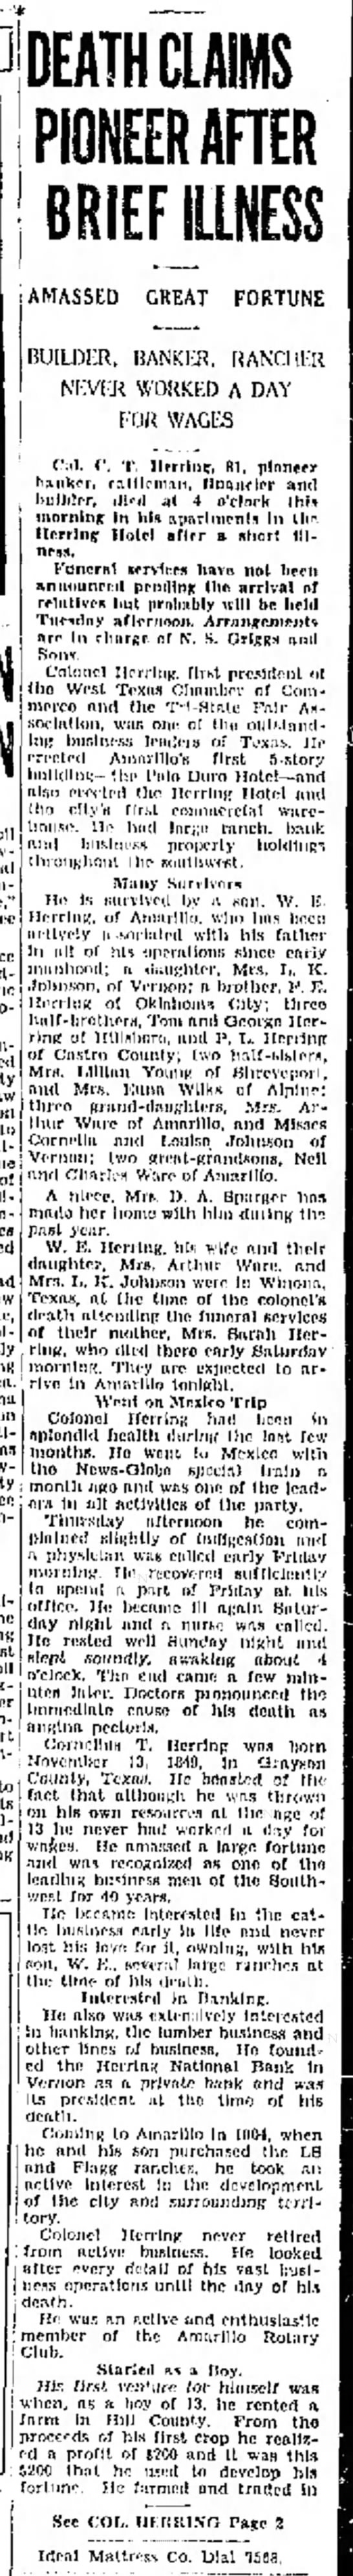 1931, 6-29 CT Herring dead Amarillo Globe-Times p1 - l DEATH CLAIMS PIONEER AFTER BRIEF ILLNESS...